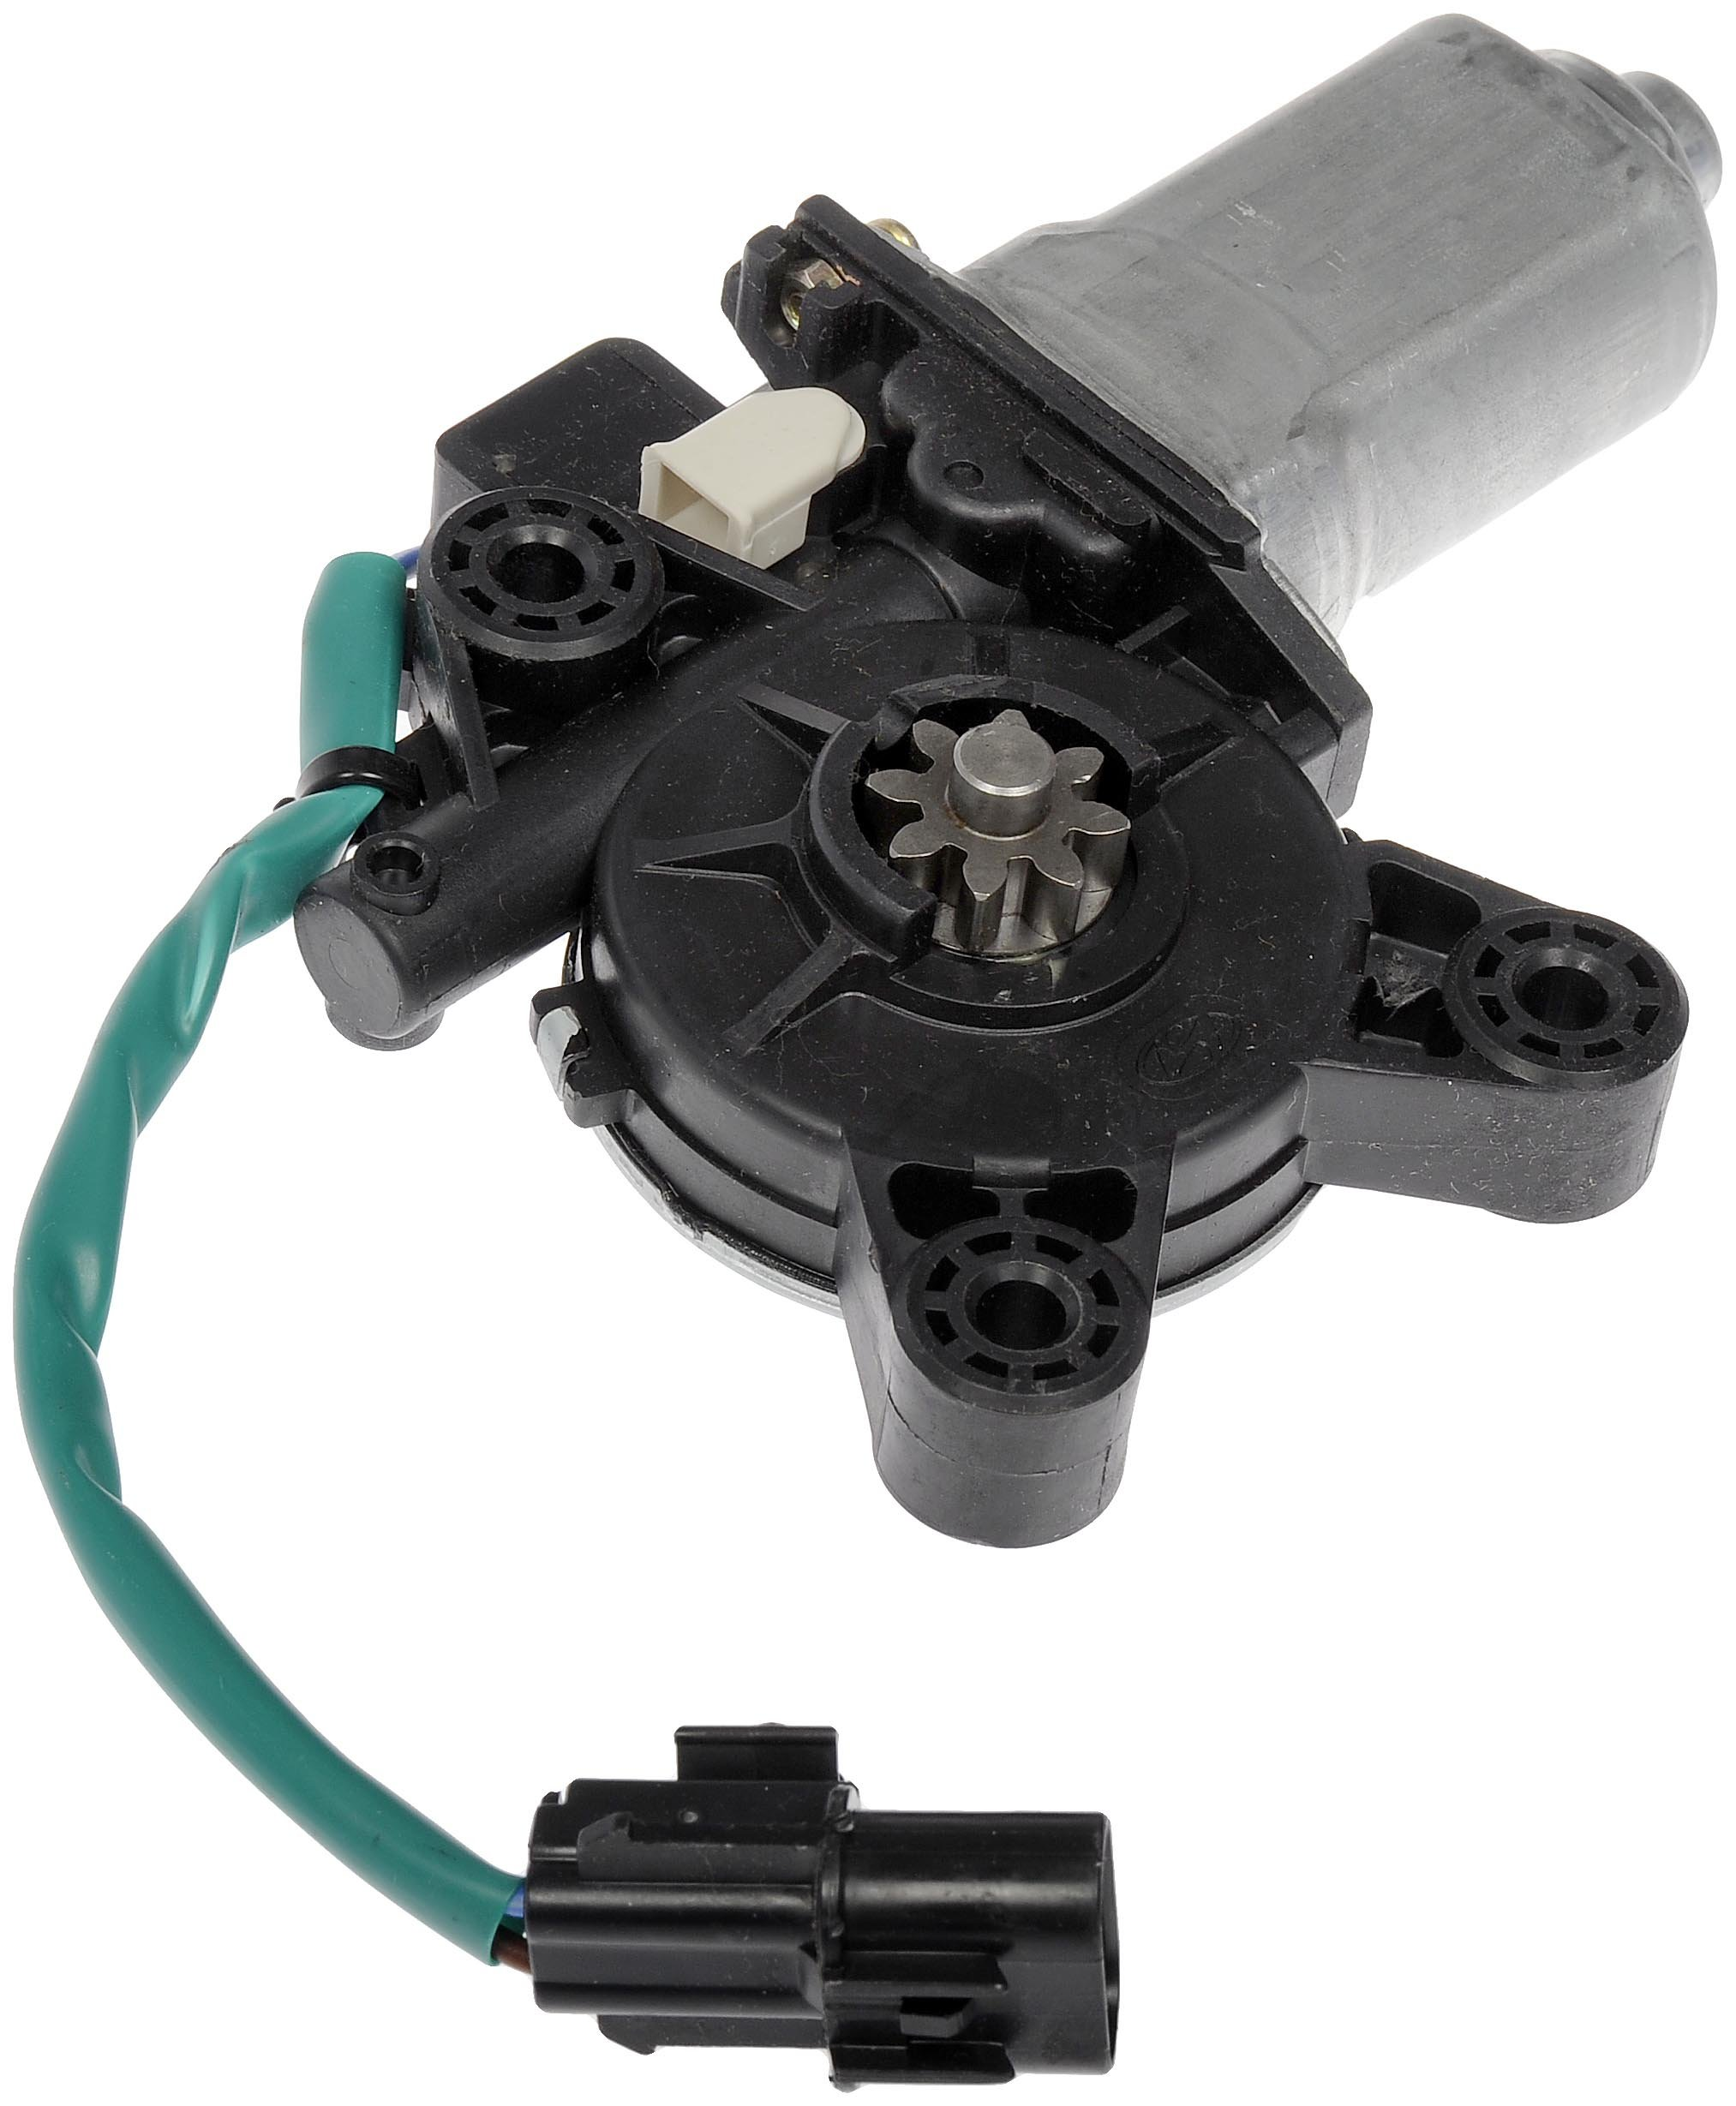 Dorman 751-714 Front Driver Side Power Window Regulator and Motor Assembly for Select ford Models